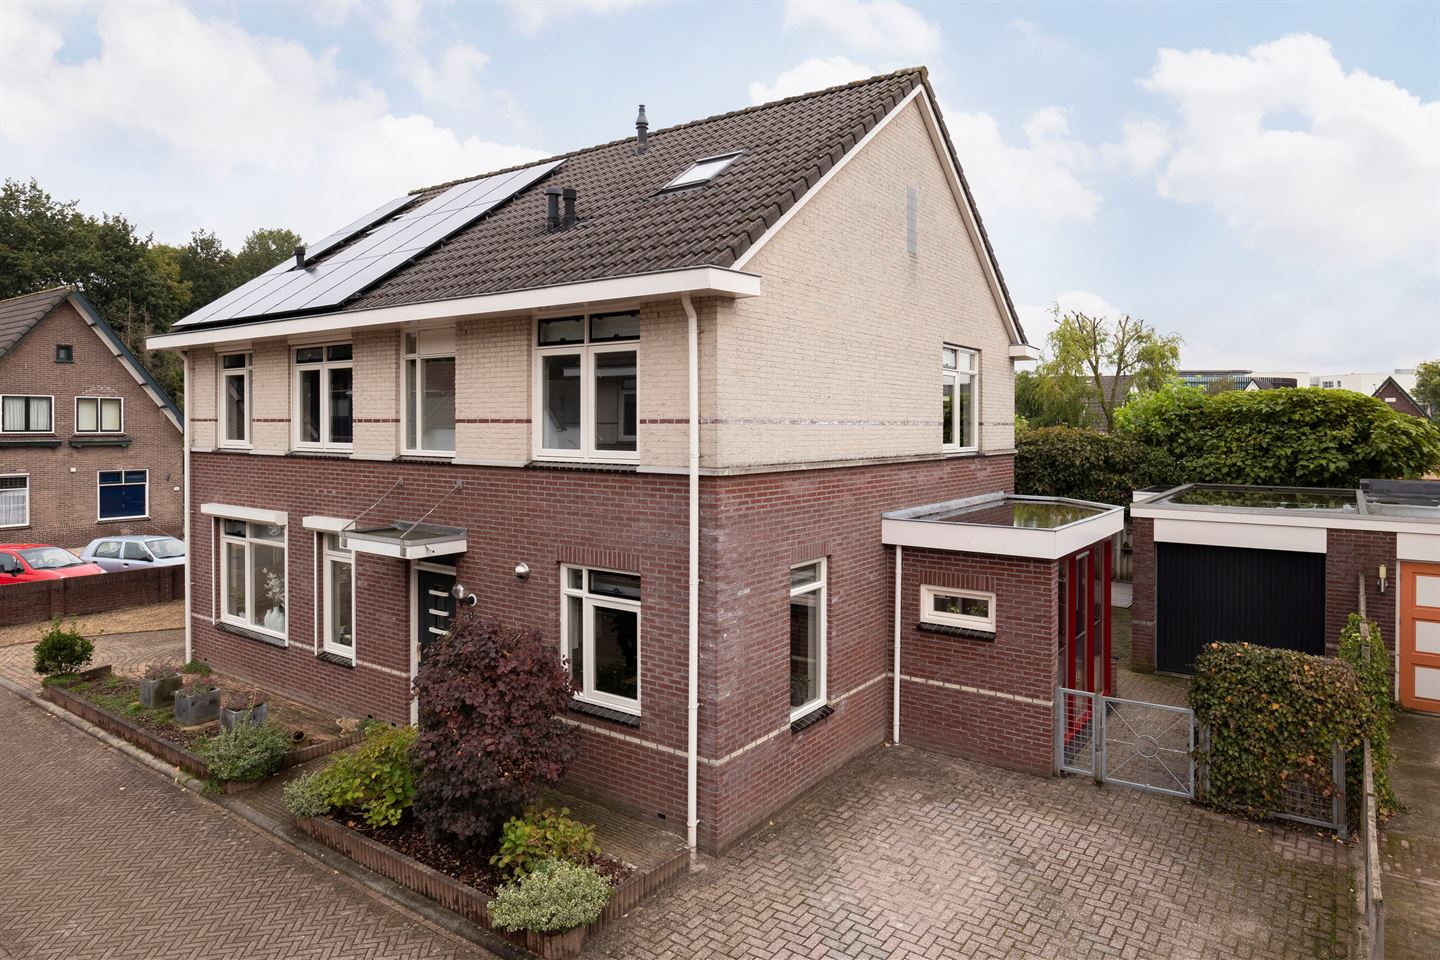 View photo 1 of Oranjestraat 3 A